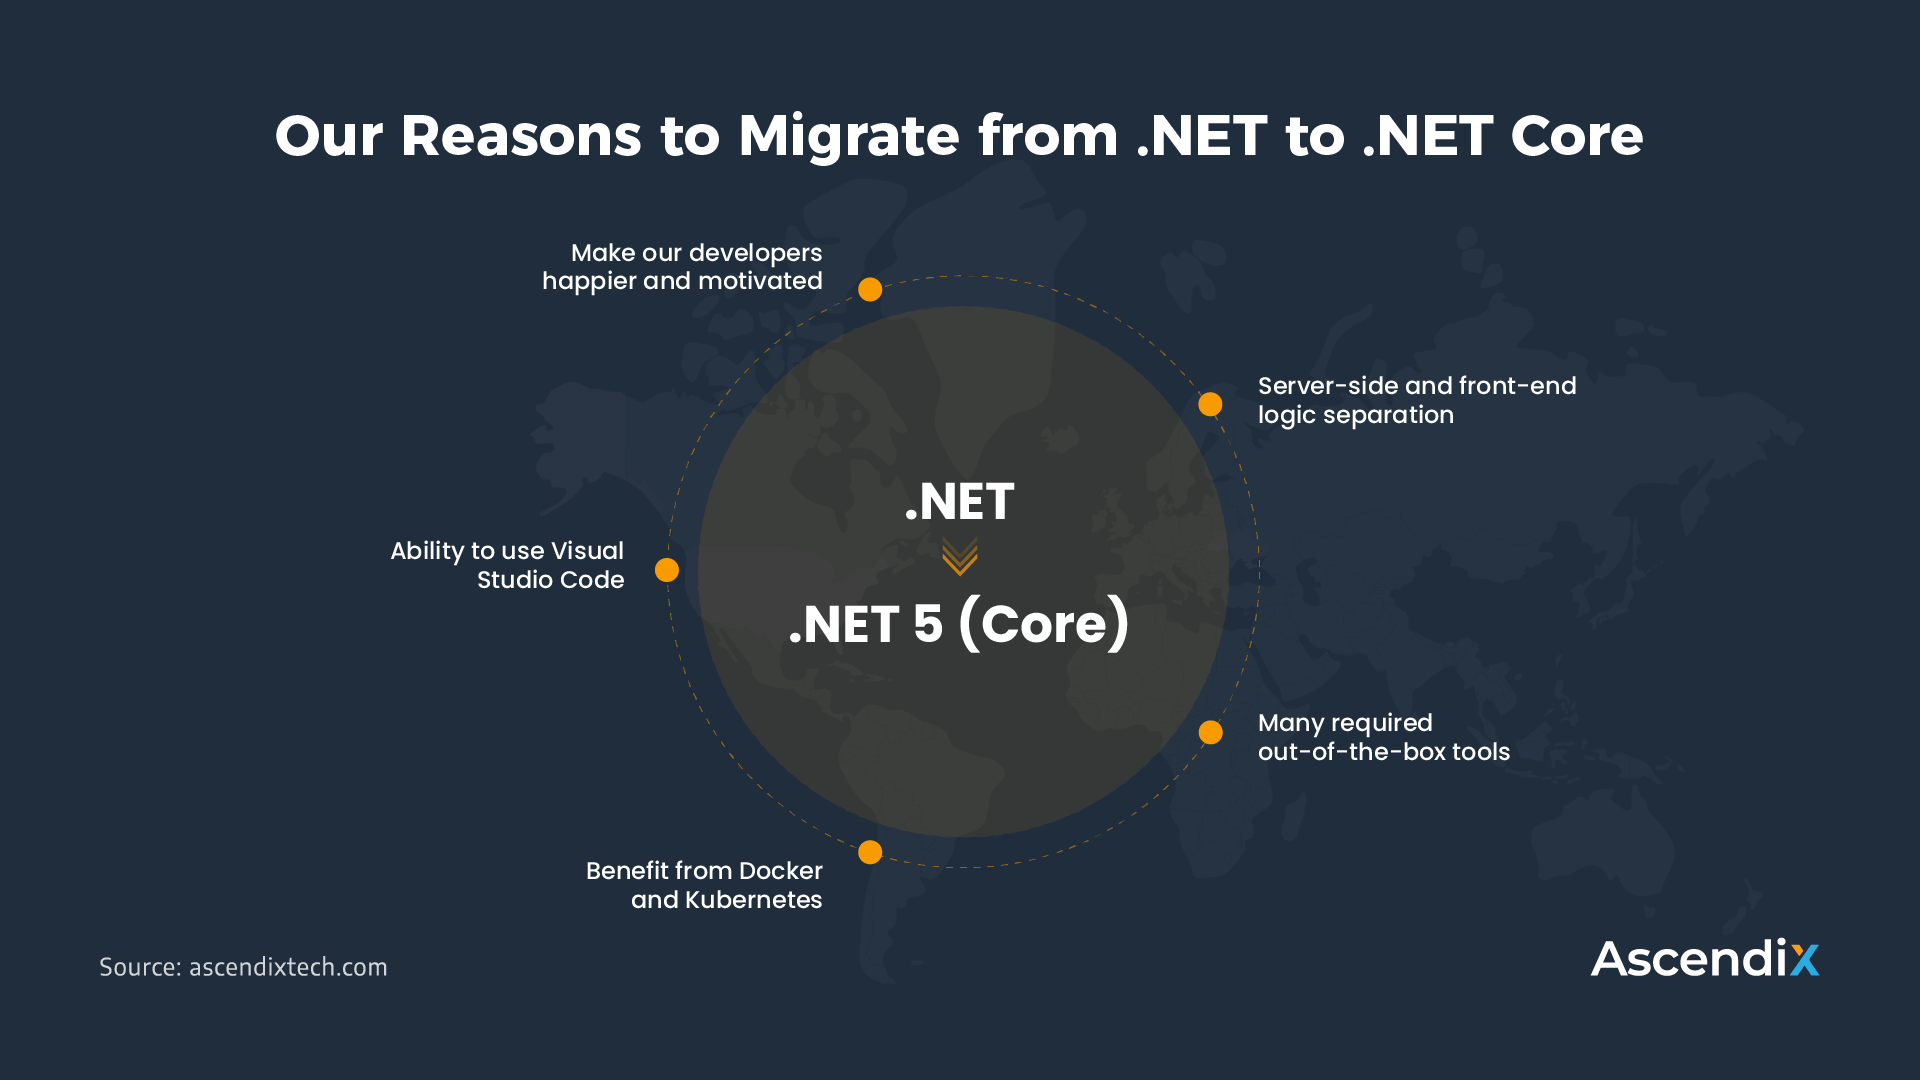 Our Reasons to Migrate from .NET to .NET Core (1)